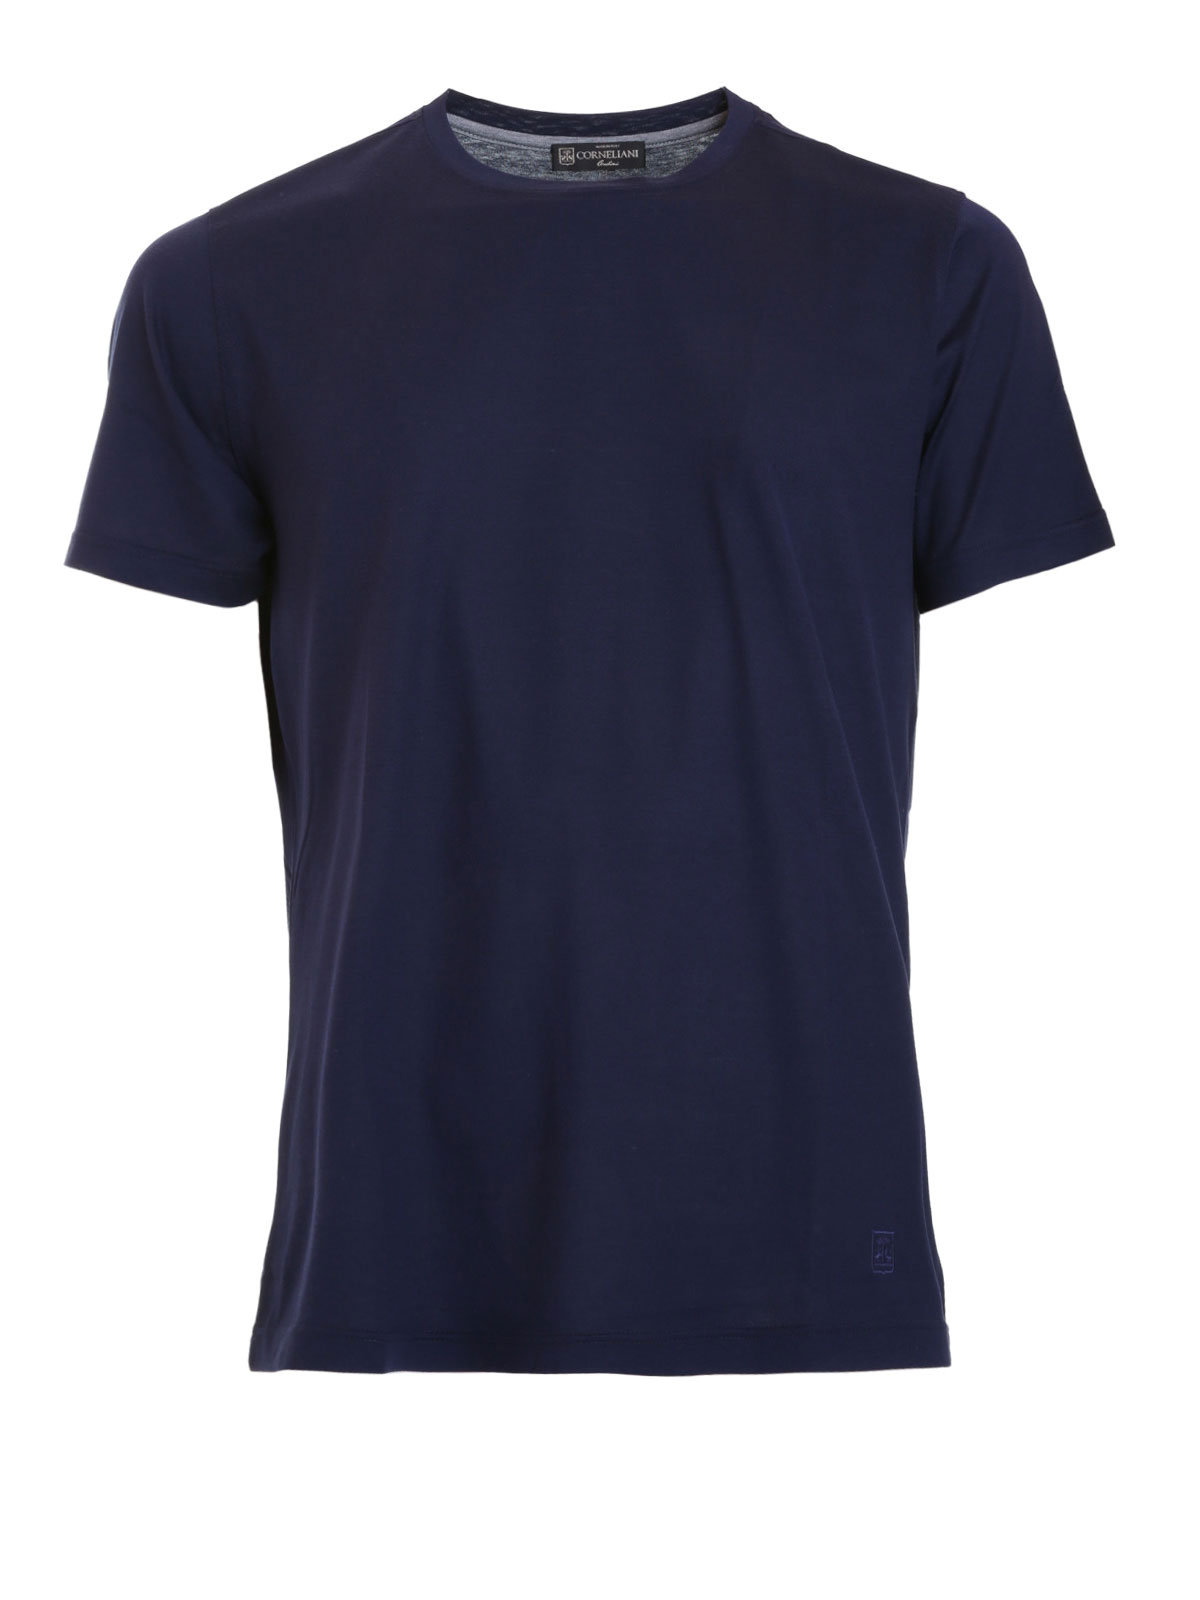 Shop eBay for great deals on % Silk T-Shirts for Men. You'll find new or used products in % Silk T-Shirts for Men on eBay. Free shipping on selected items.